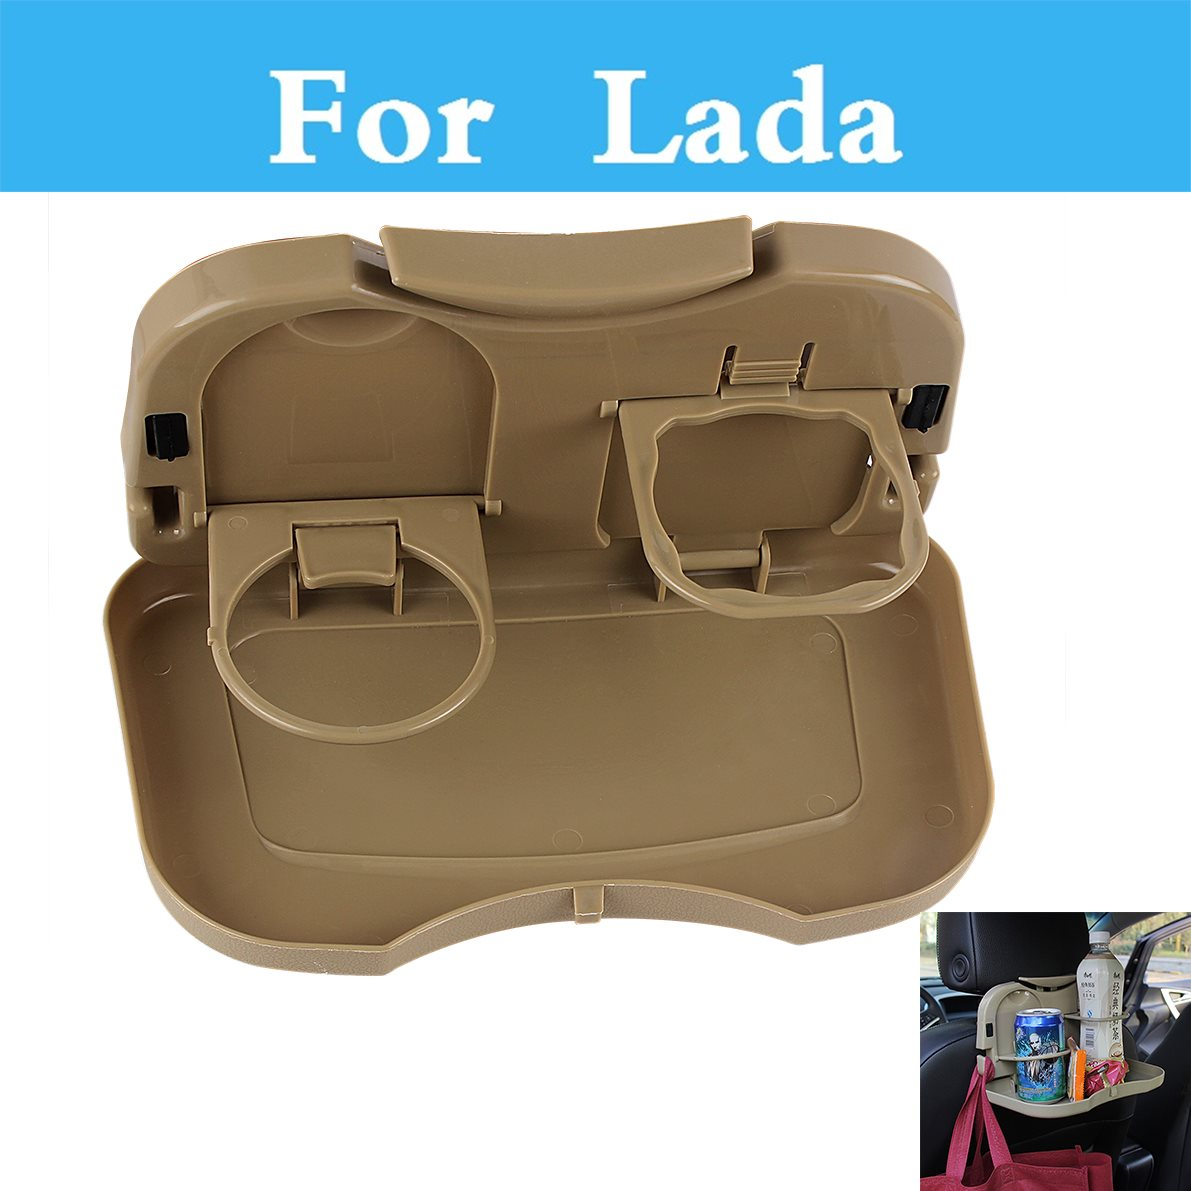 New Double Car Cup Holder Drinks Holders Car Accessories For <font><b>Lada</b></font> 1111 Oka 2105 2106 2107 <font><b>2109</b></font> 2110 2112 2113 2114 2115 image